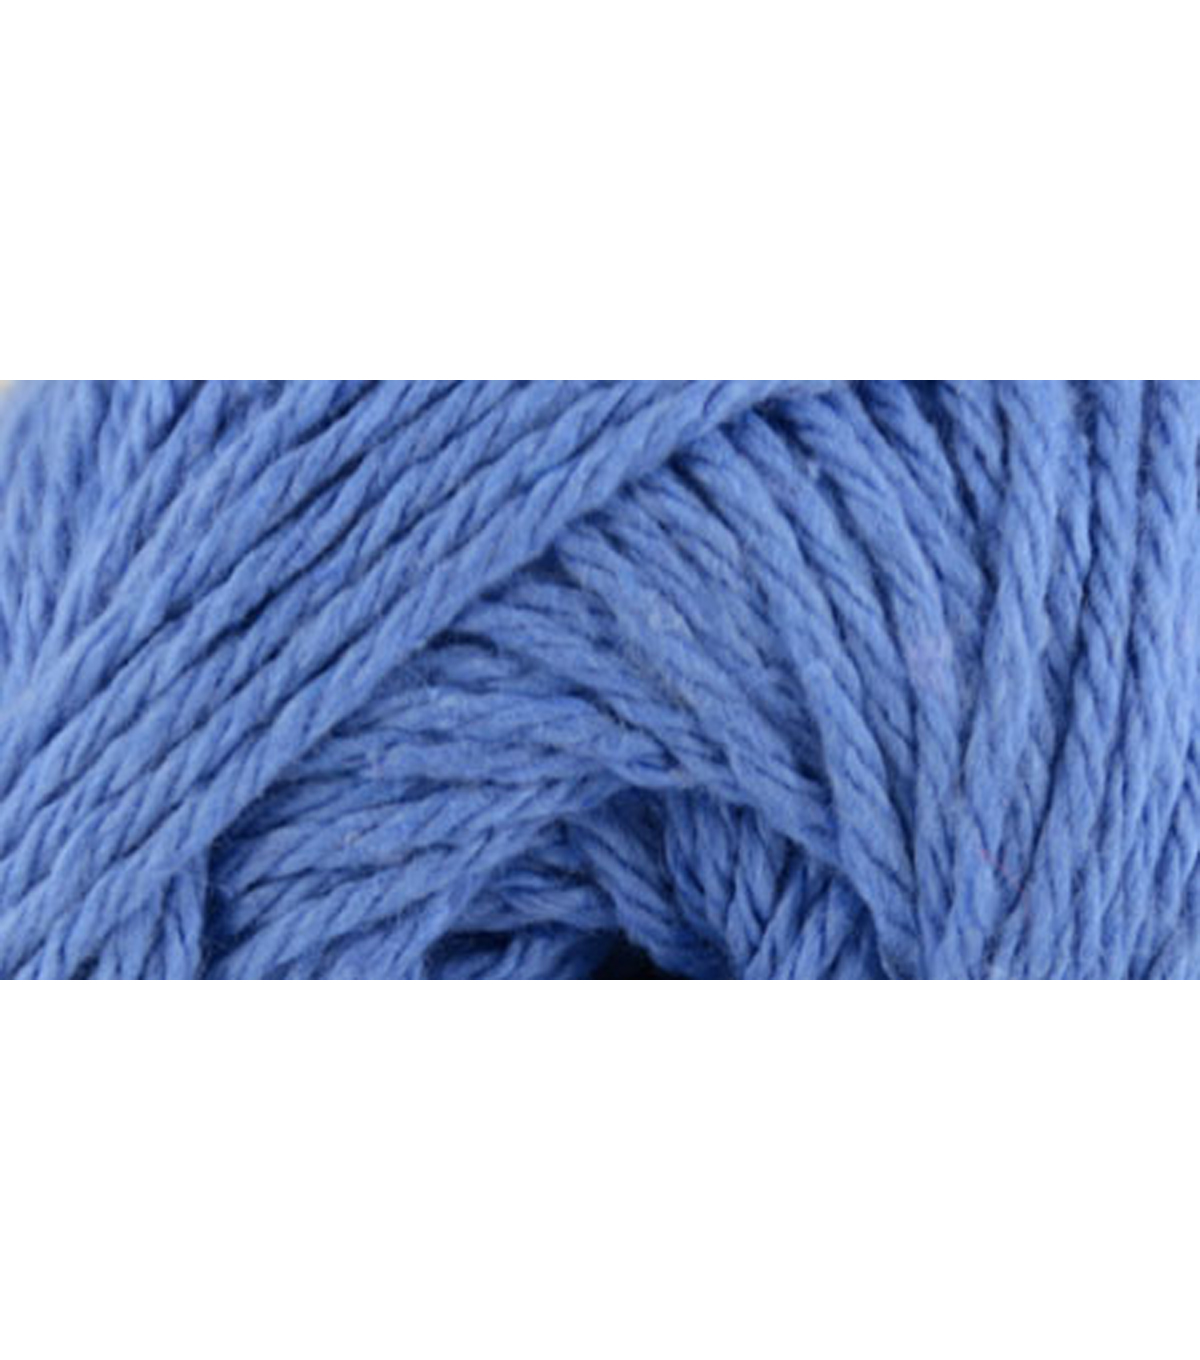 Premier® Yarns Solid Home Cotton Yarn 140 yds